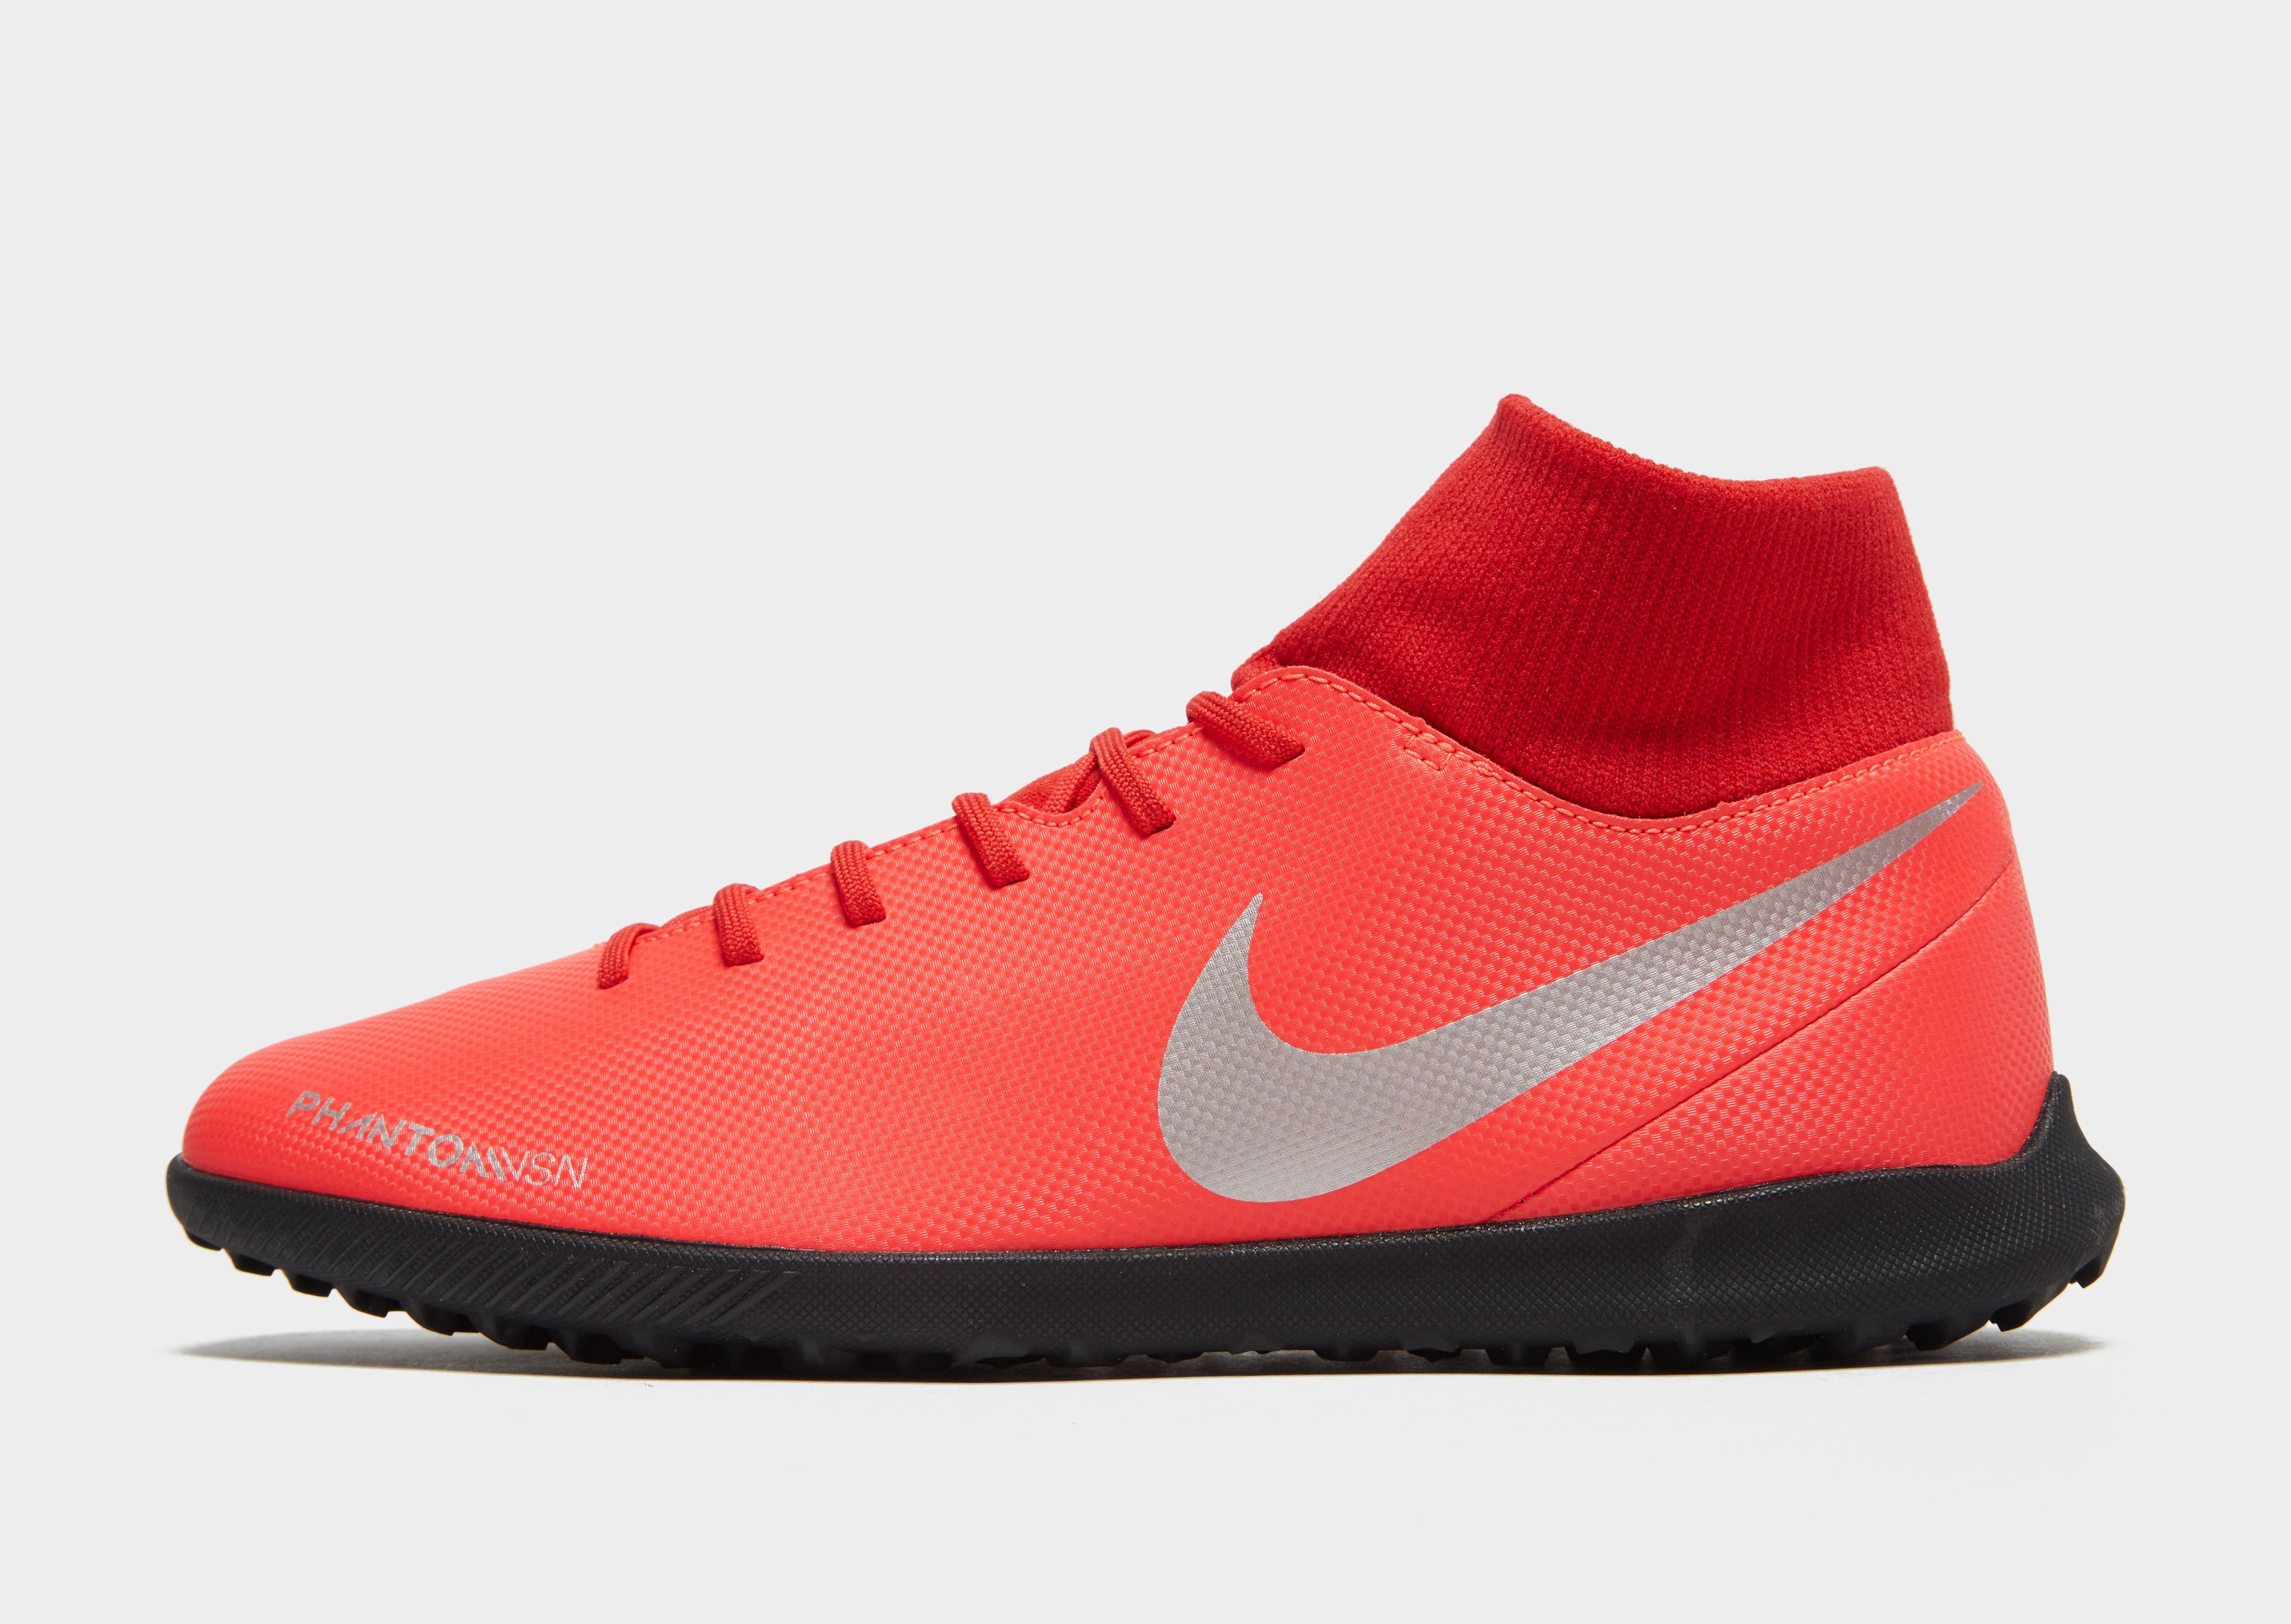 save off 396fb a6503 Nike Game Over Phantom Vision Club TF   JD Sports Ireland